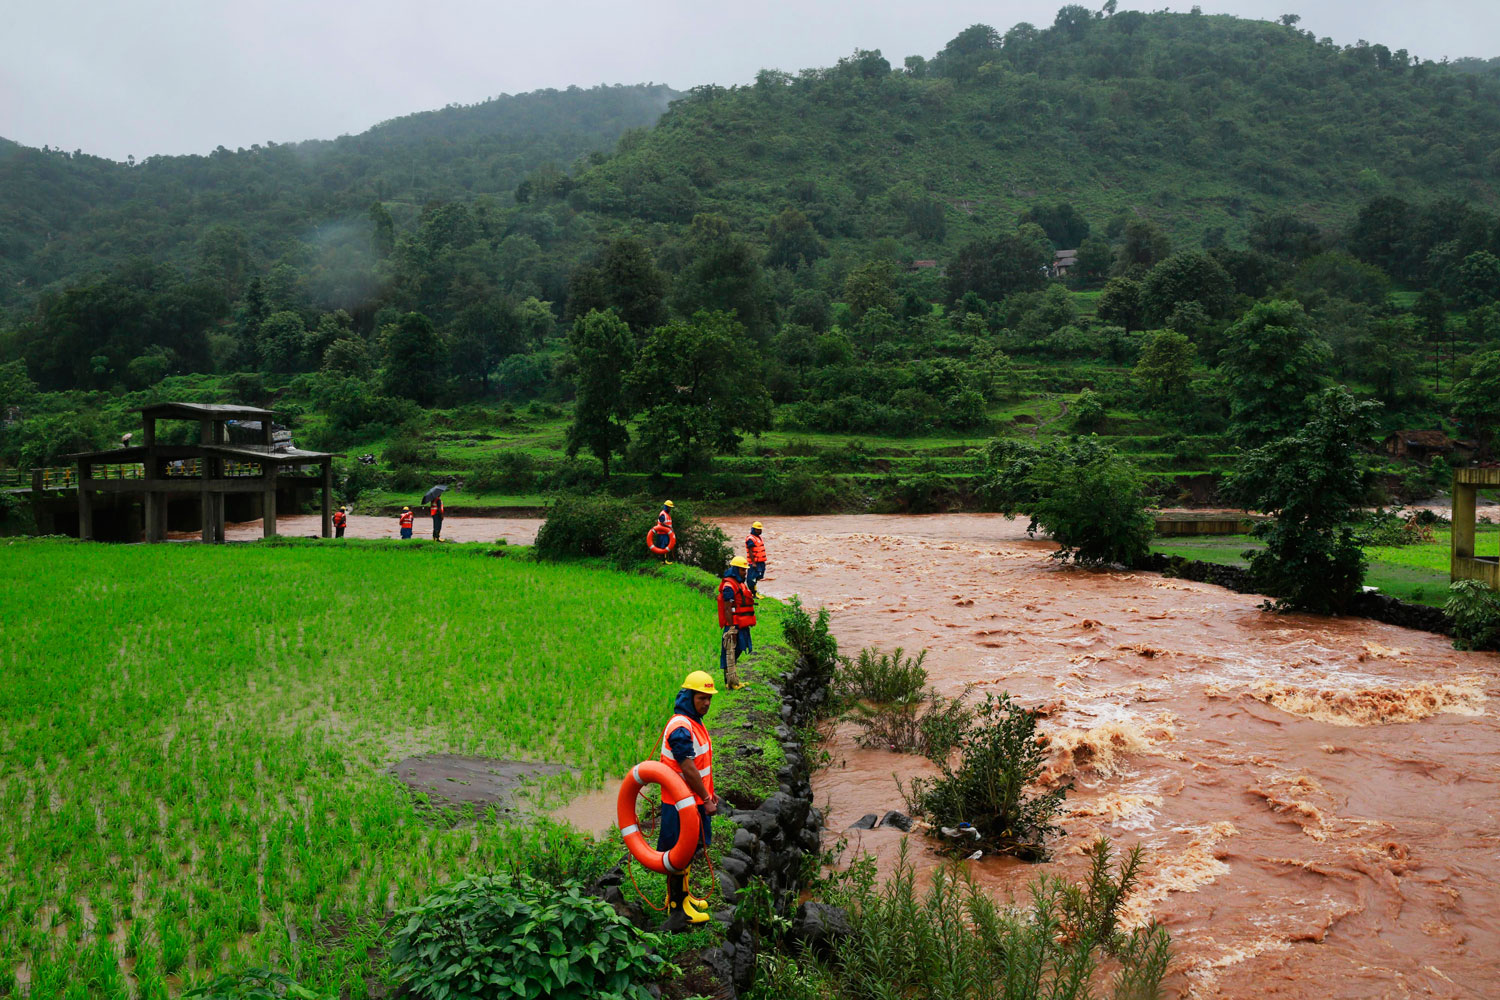 Rescue workers stand on the bank of a river as they look for bodies after a massive landslide in Malin village in Pune district of western Maharashtra state, India on July 31, 2014.